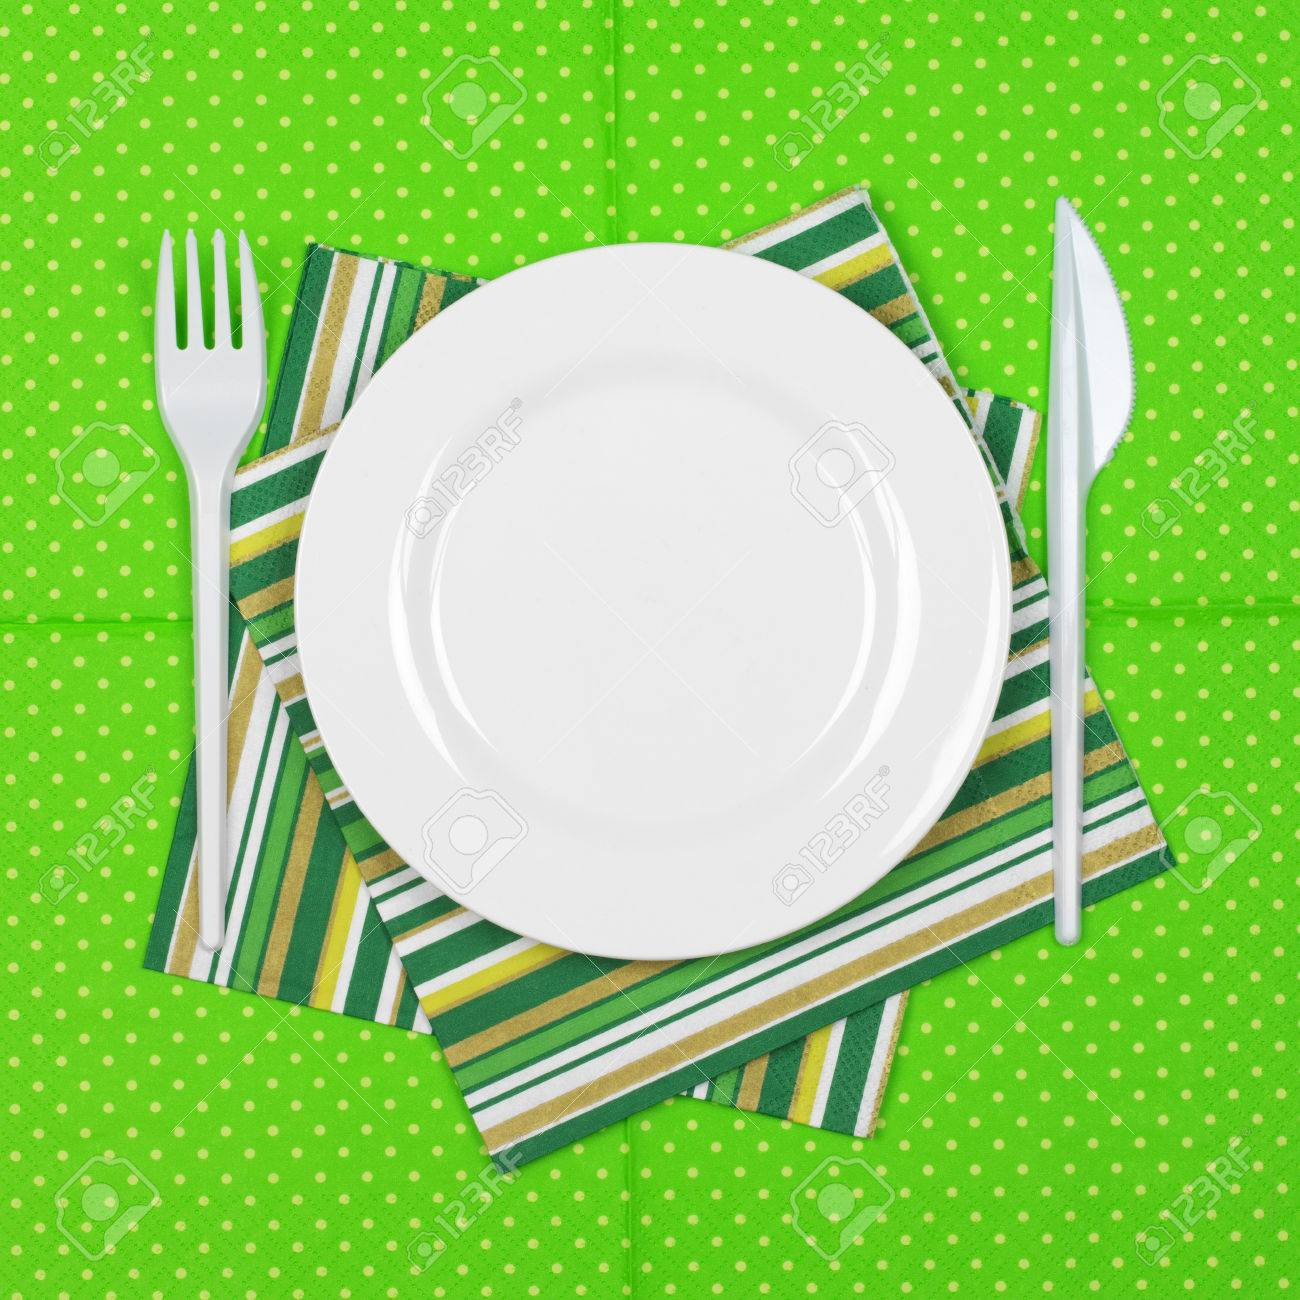 Disposable tableware set white plate with plastic fork and knife on bright green polka dot  sc 1 st  123RF.com : polka dot plastic plates - pezcame.com